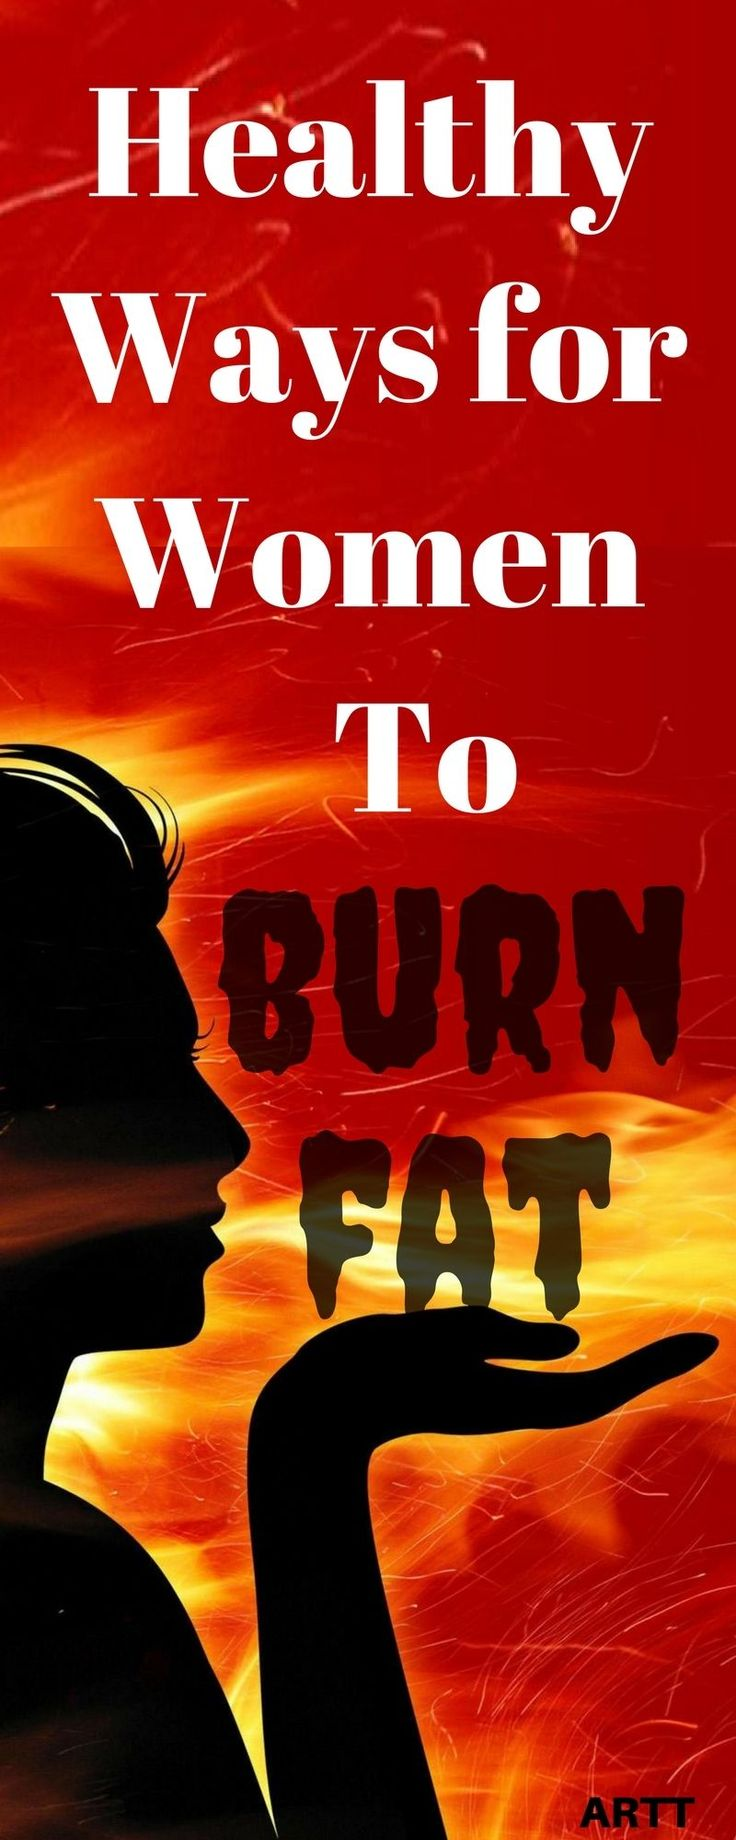 In searching for the best Fat Burners for Women, the term 'fat burner' is used to describe nutrition supplements that are claimed to acutely increase fat metabolism or energy expenditure, Healthy Ways for Women to Burn Fat | fat burners for women pills | fat burners for women best | fat burners for women drink | fat burners for women lose belly | supplements | fat burners | weight loss | burn fat | aroadtotravel.com #bellyfatburnerpills